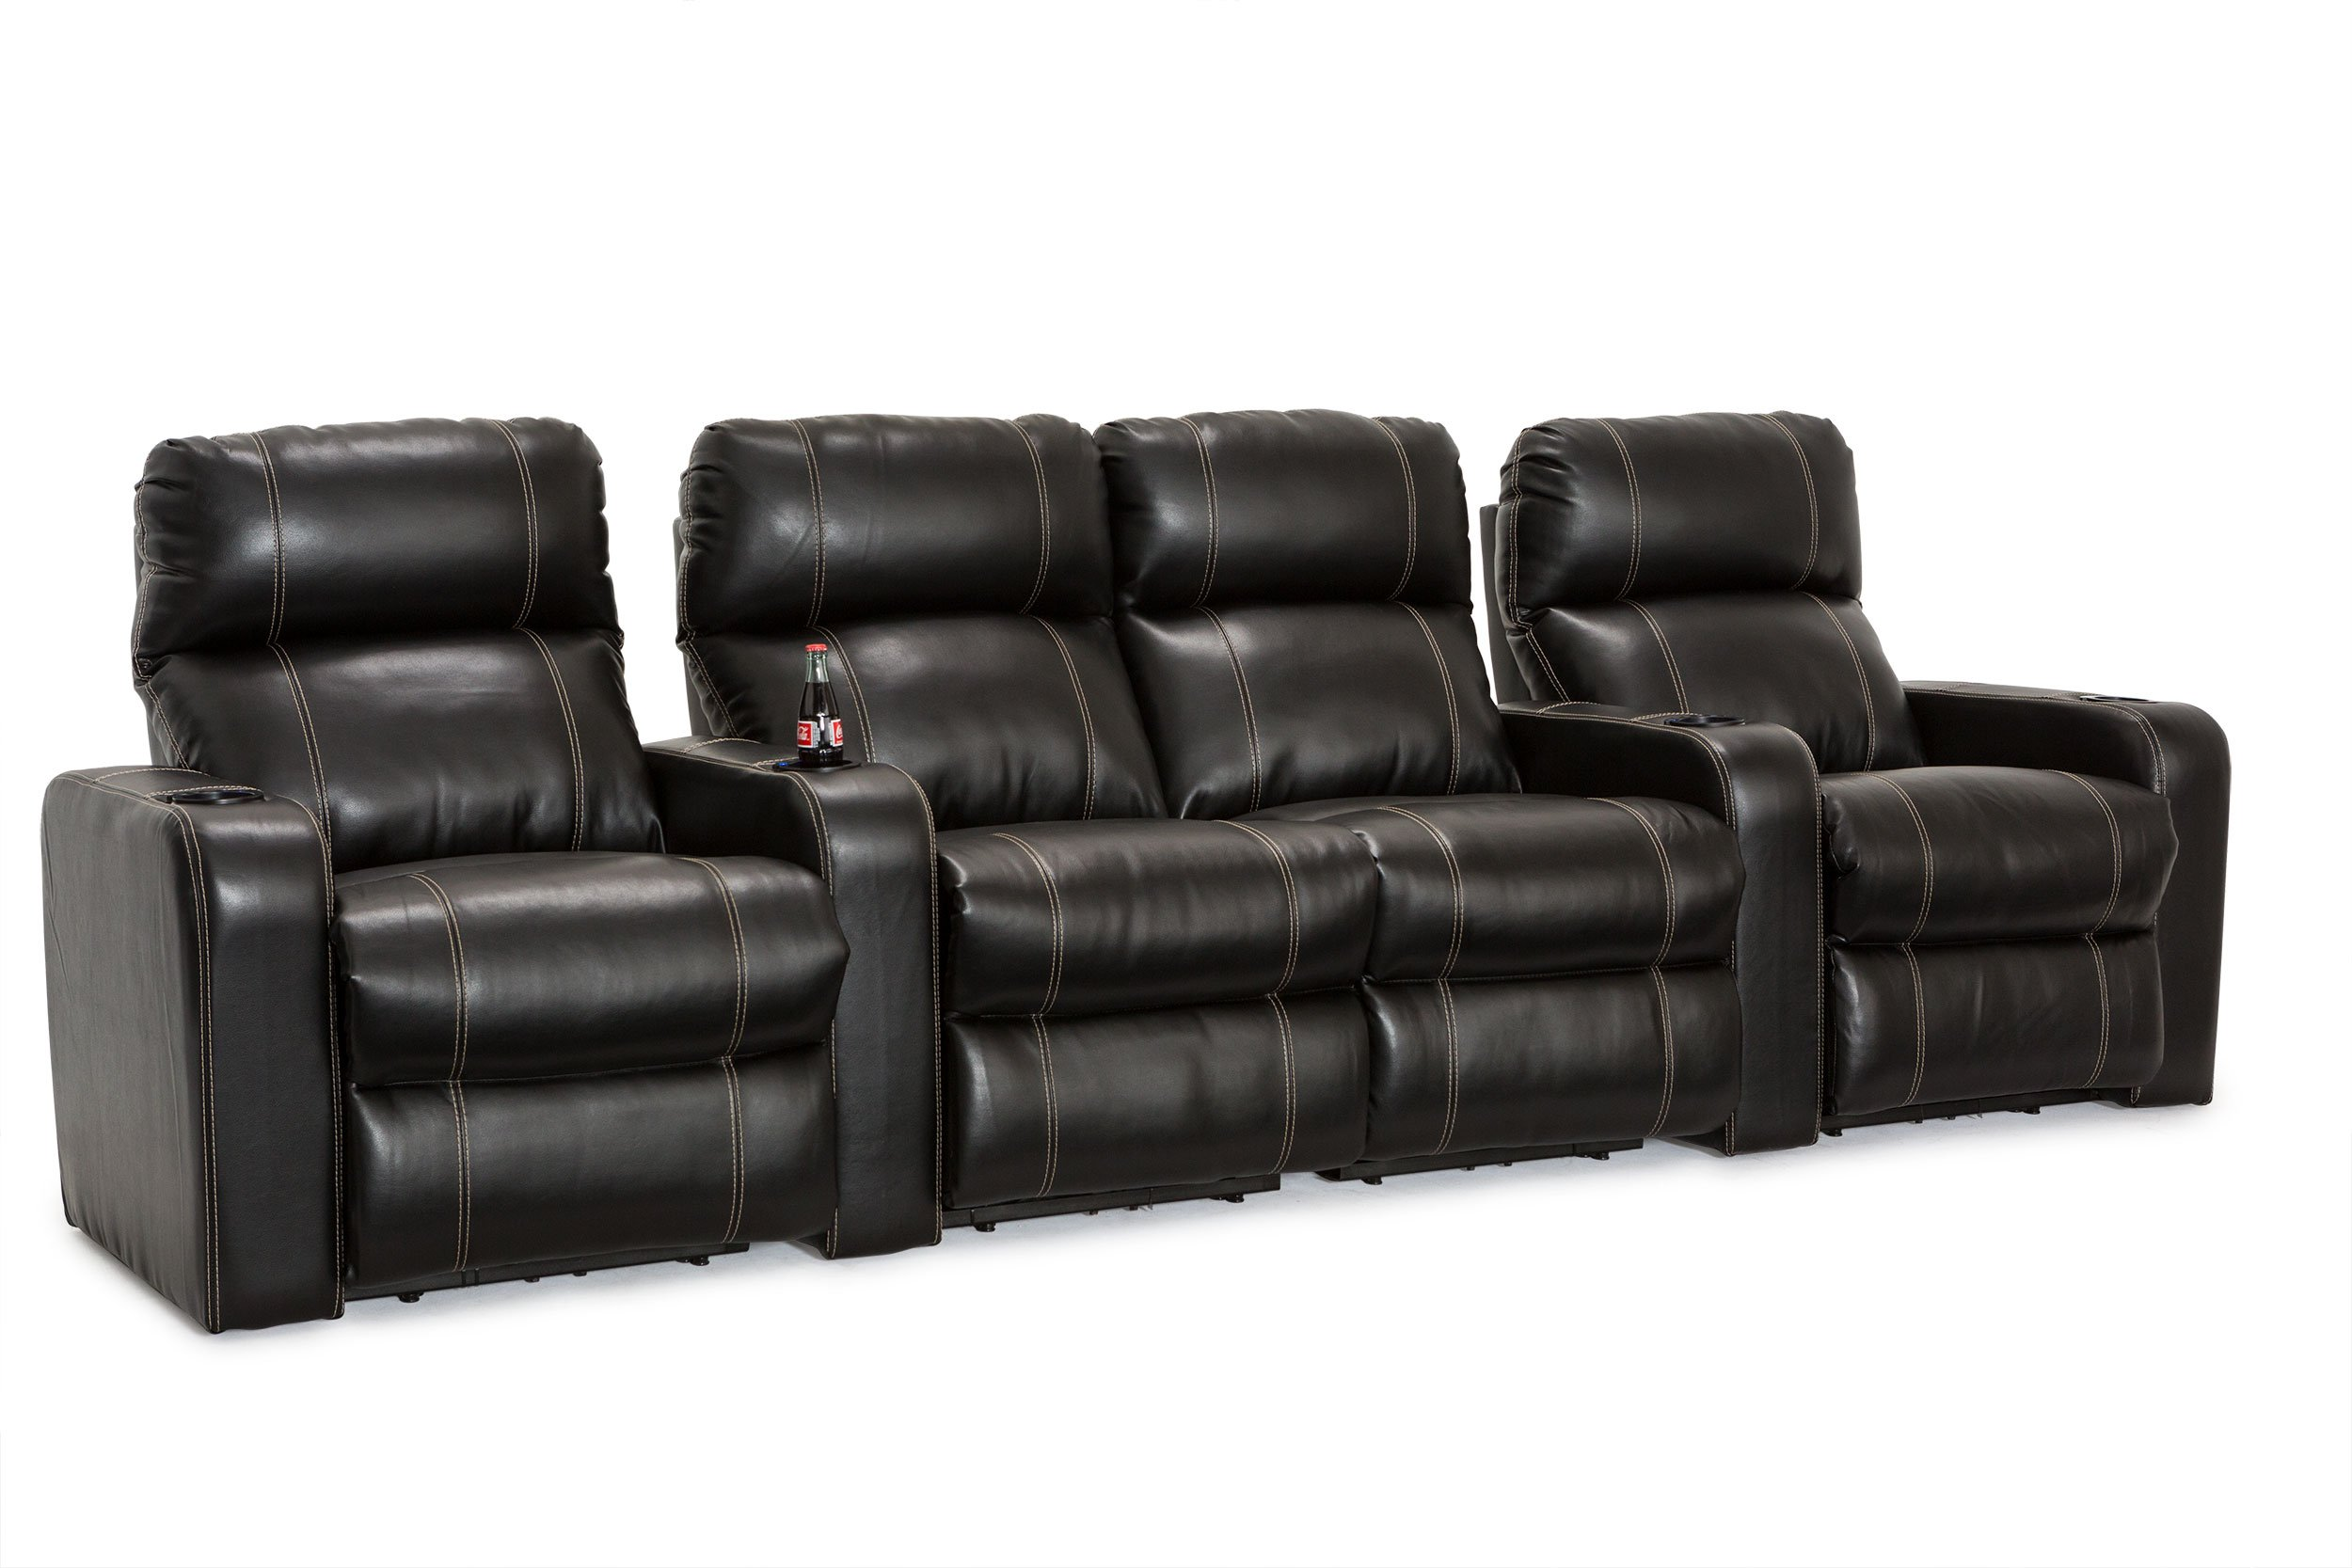 Lane Dynasty Home Theater Seating Bonded Leather Power Recline (Row of 4 with Middle Loveseat, Black)